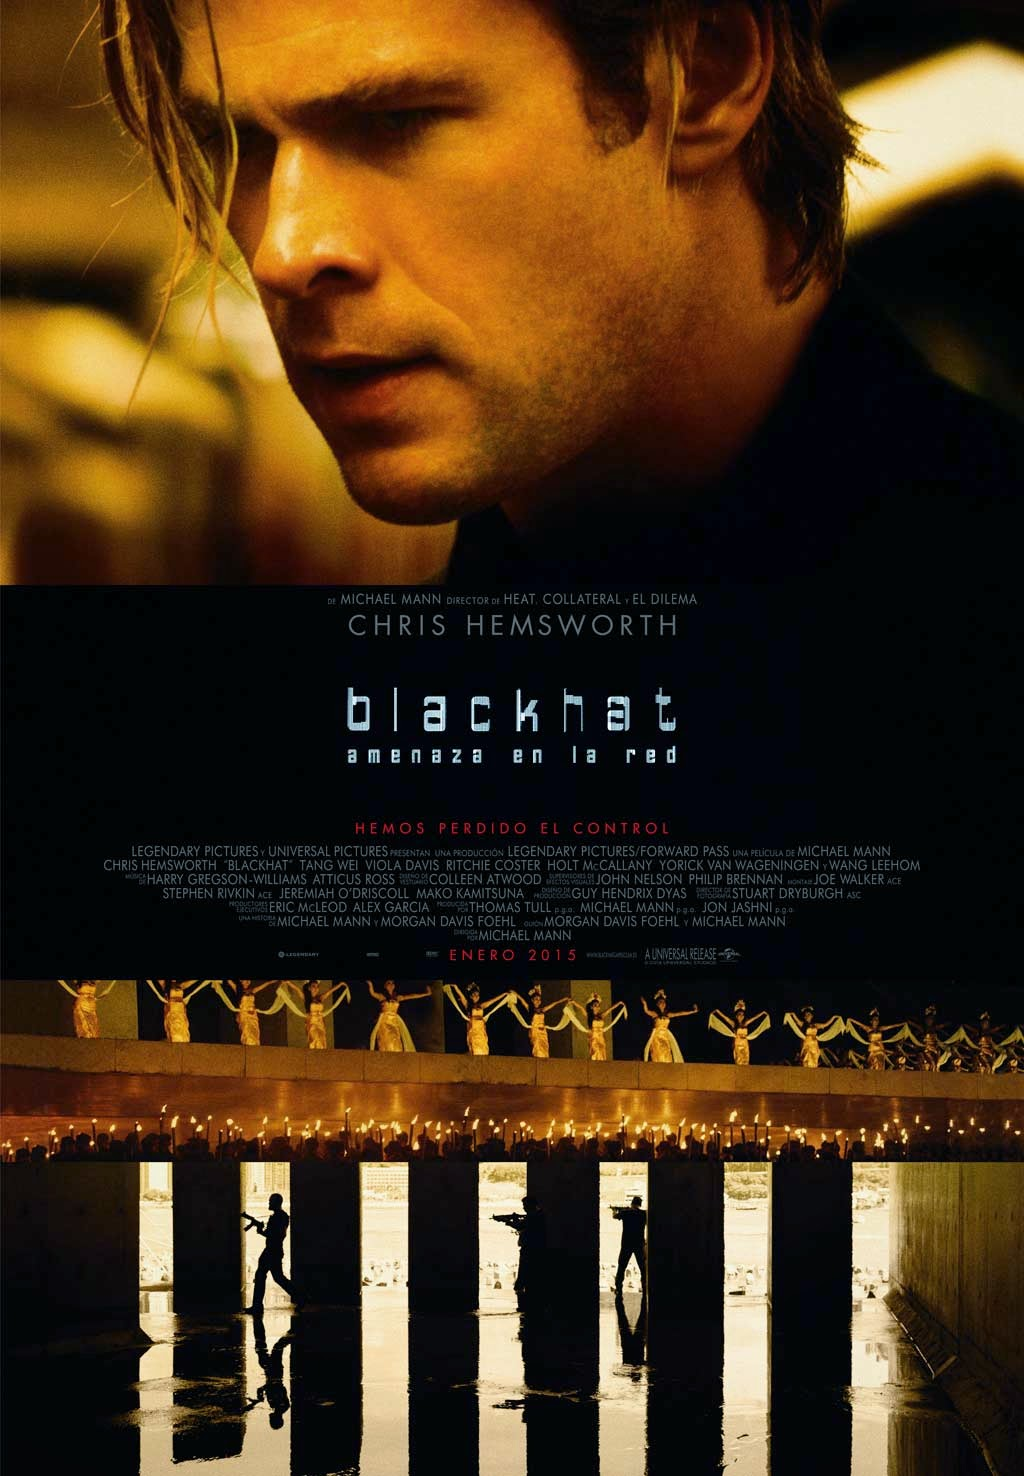 Blackhat - Amenaza en la red